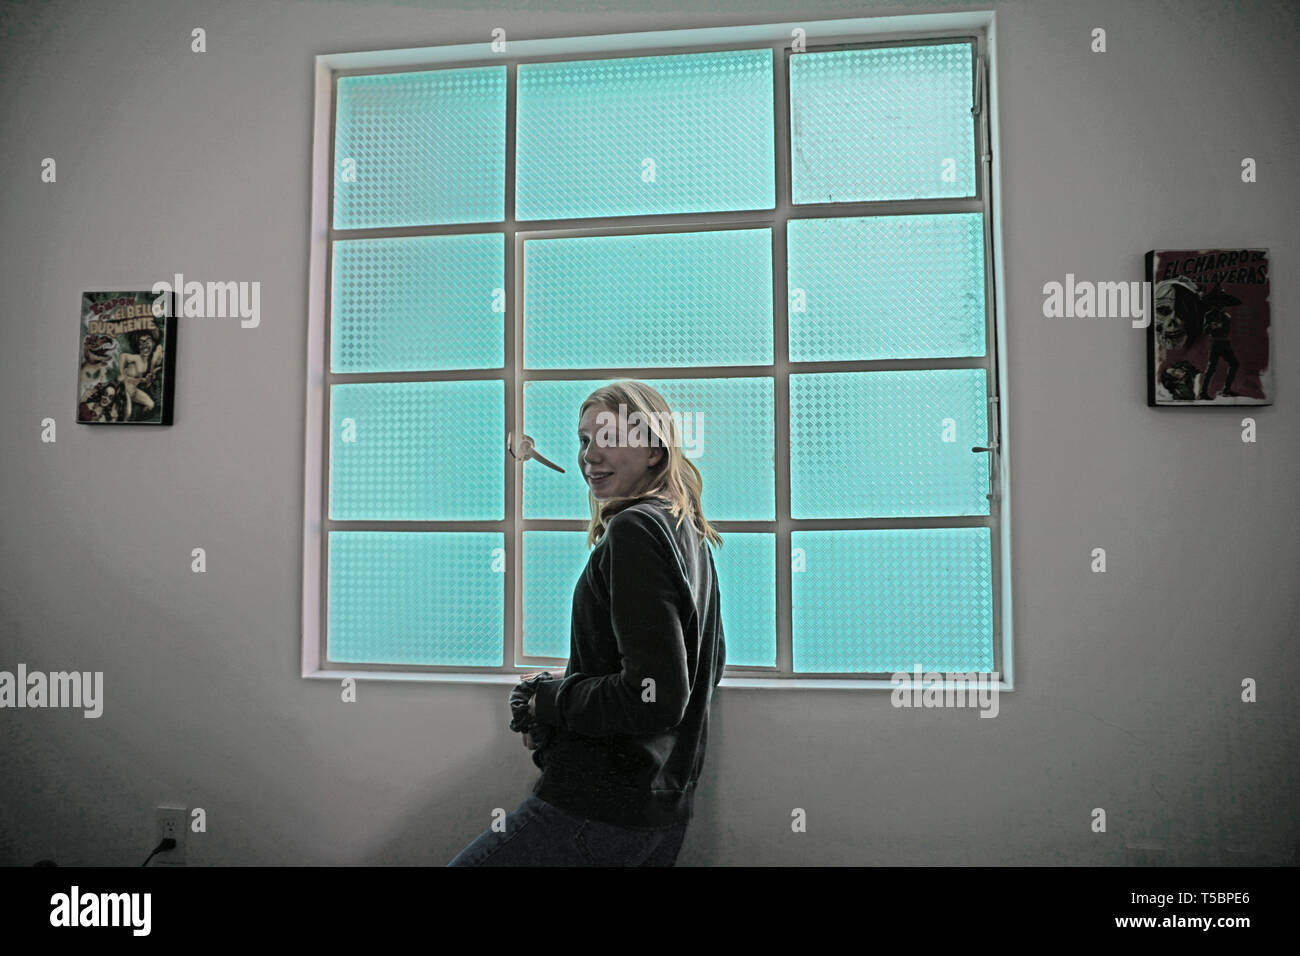 Girl in front of twelve-paned frosted glass turquoise-colored window. Stock Photo